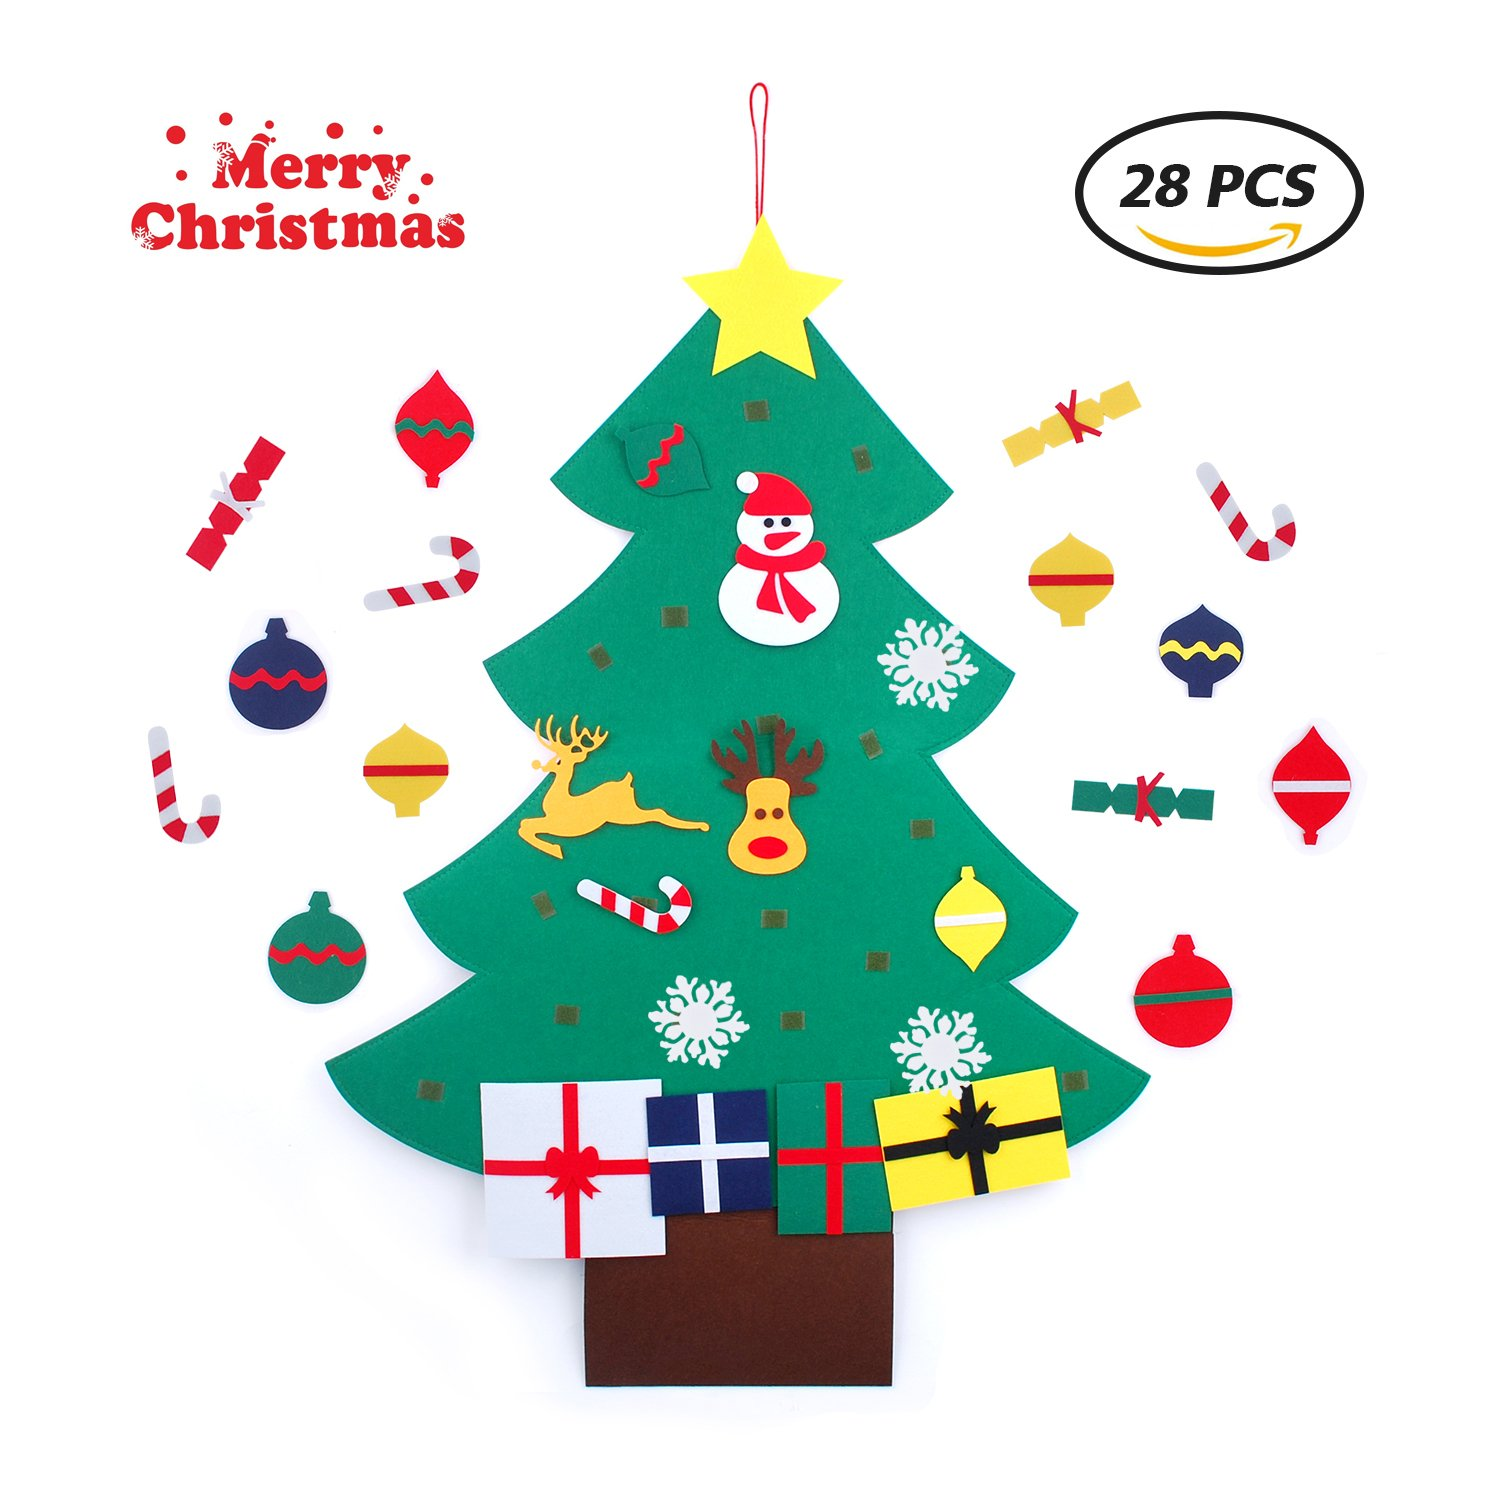 DIY Green Felt Christmas Tree, Christmas Tree Felt with Wall Hanging Ornaments for Kids, Toddlers- Christmas Decorations and Gifts (28 Pcs) (Multicolor)